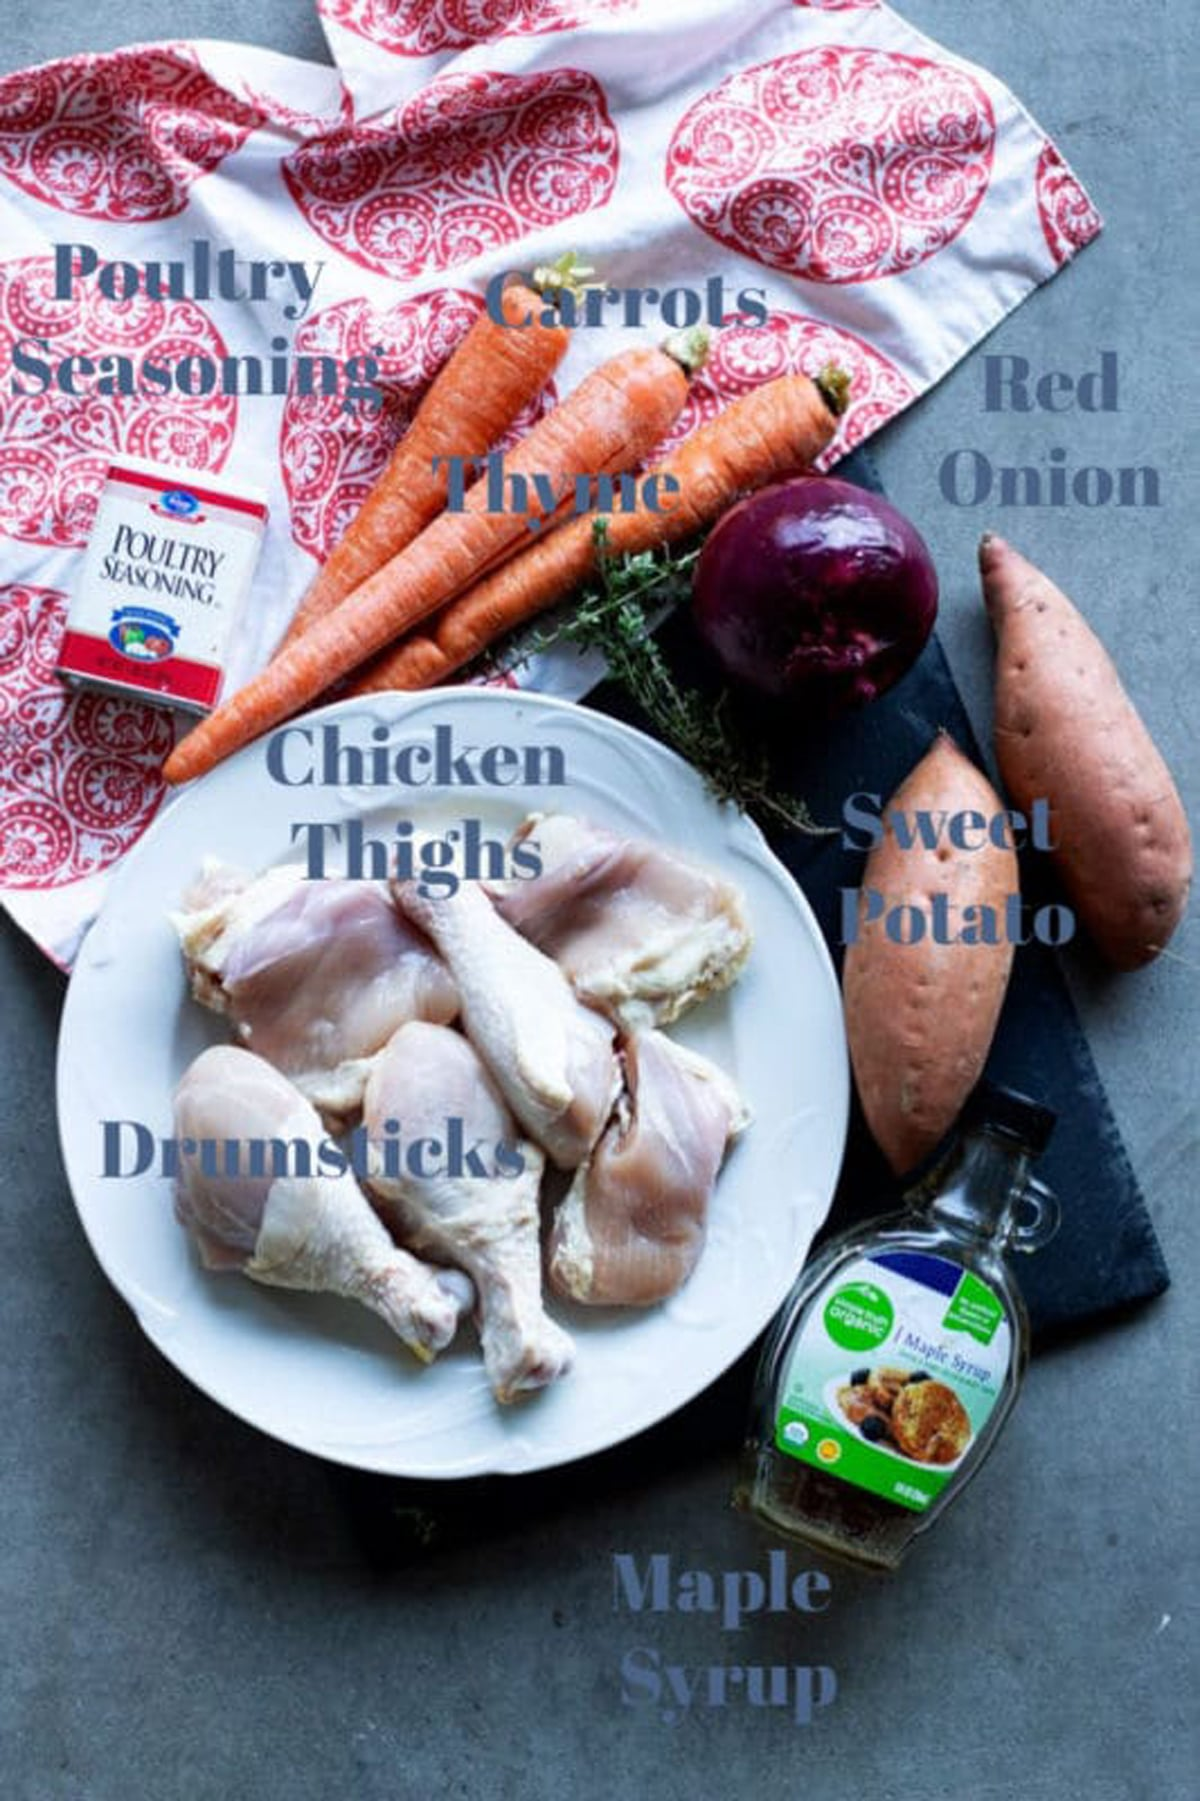 Chicken thighs and drumsticks, carrots, red onion, sweet potato, thyme, maple syrup, seasoning on table.